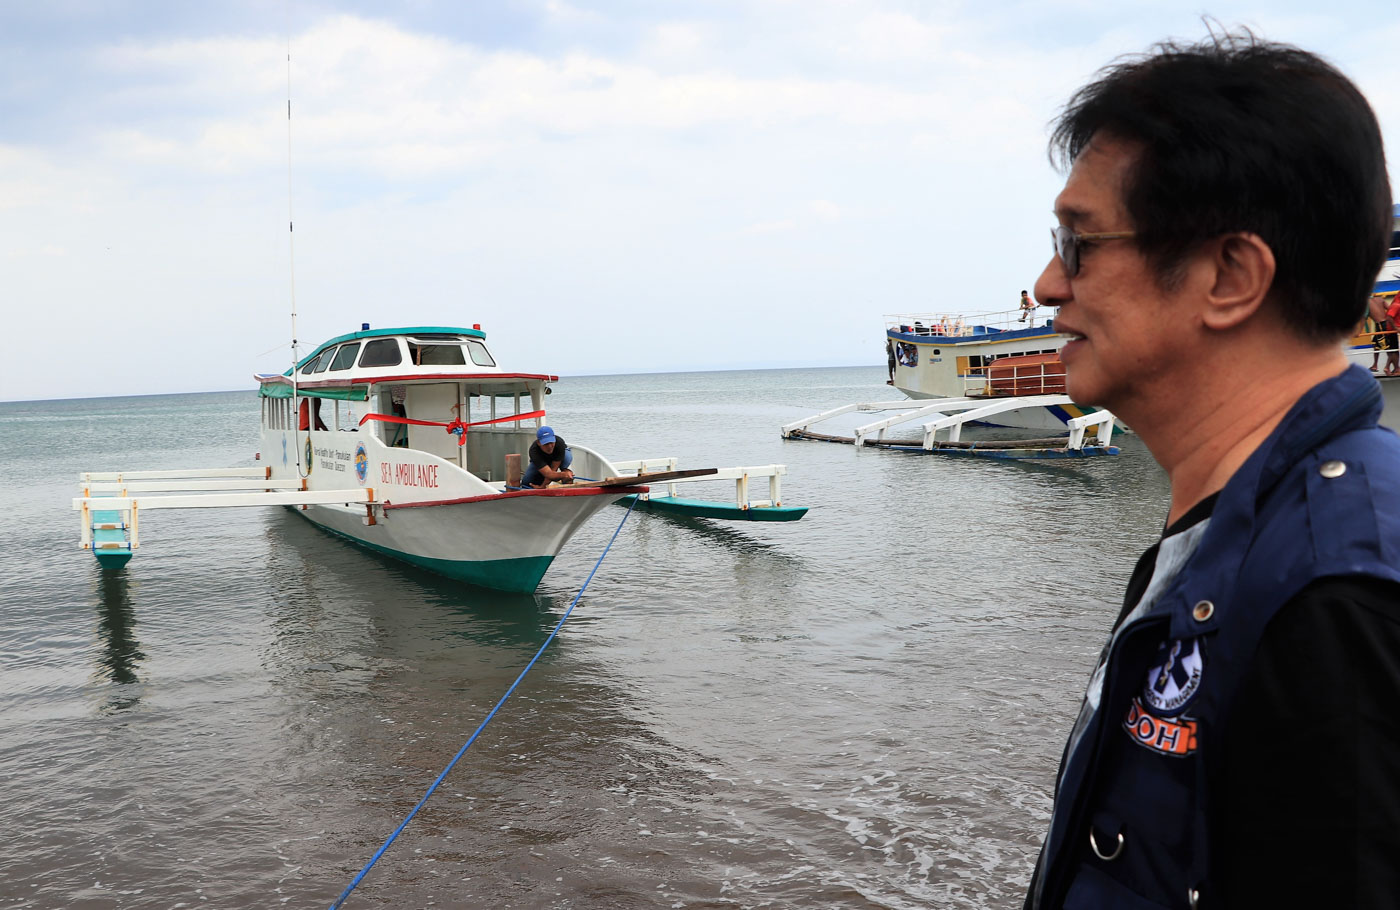 DREAM FULFILLED. Another dream fulfilled for DOH-CALABARZON Regional Director Eduardo C. Janairo who is instrumental in the accomplishment of the project as he gazes to the emergency vessel. Photo courtesy of DOH-CALABARZON